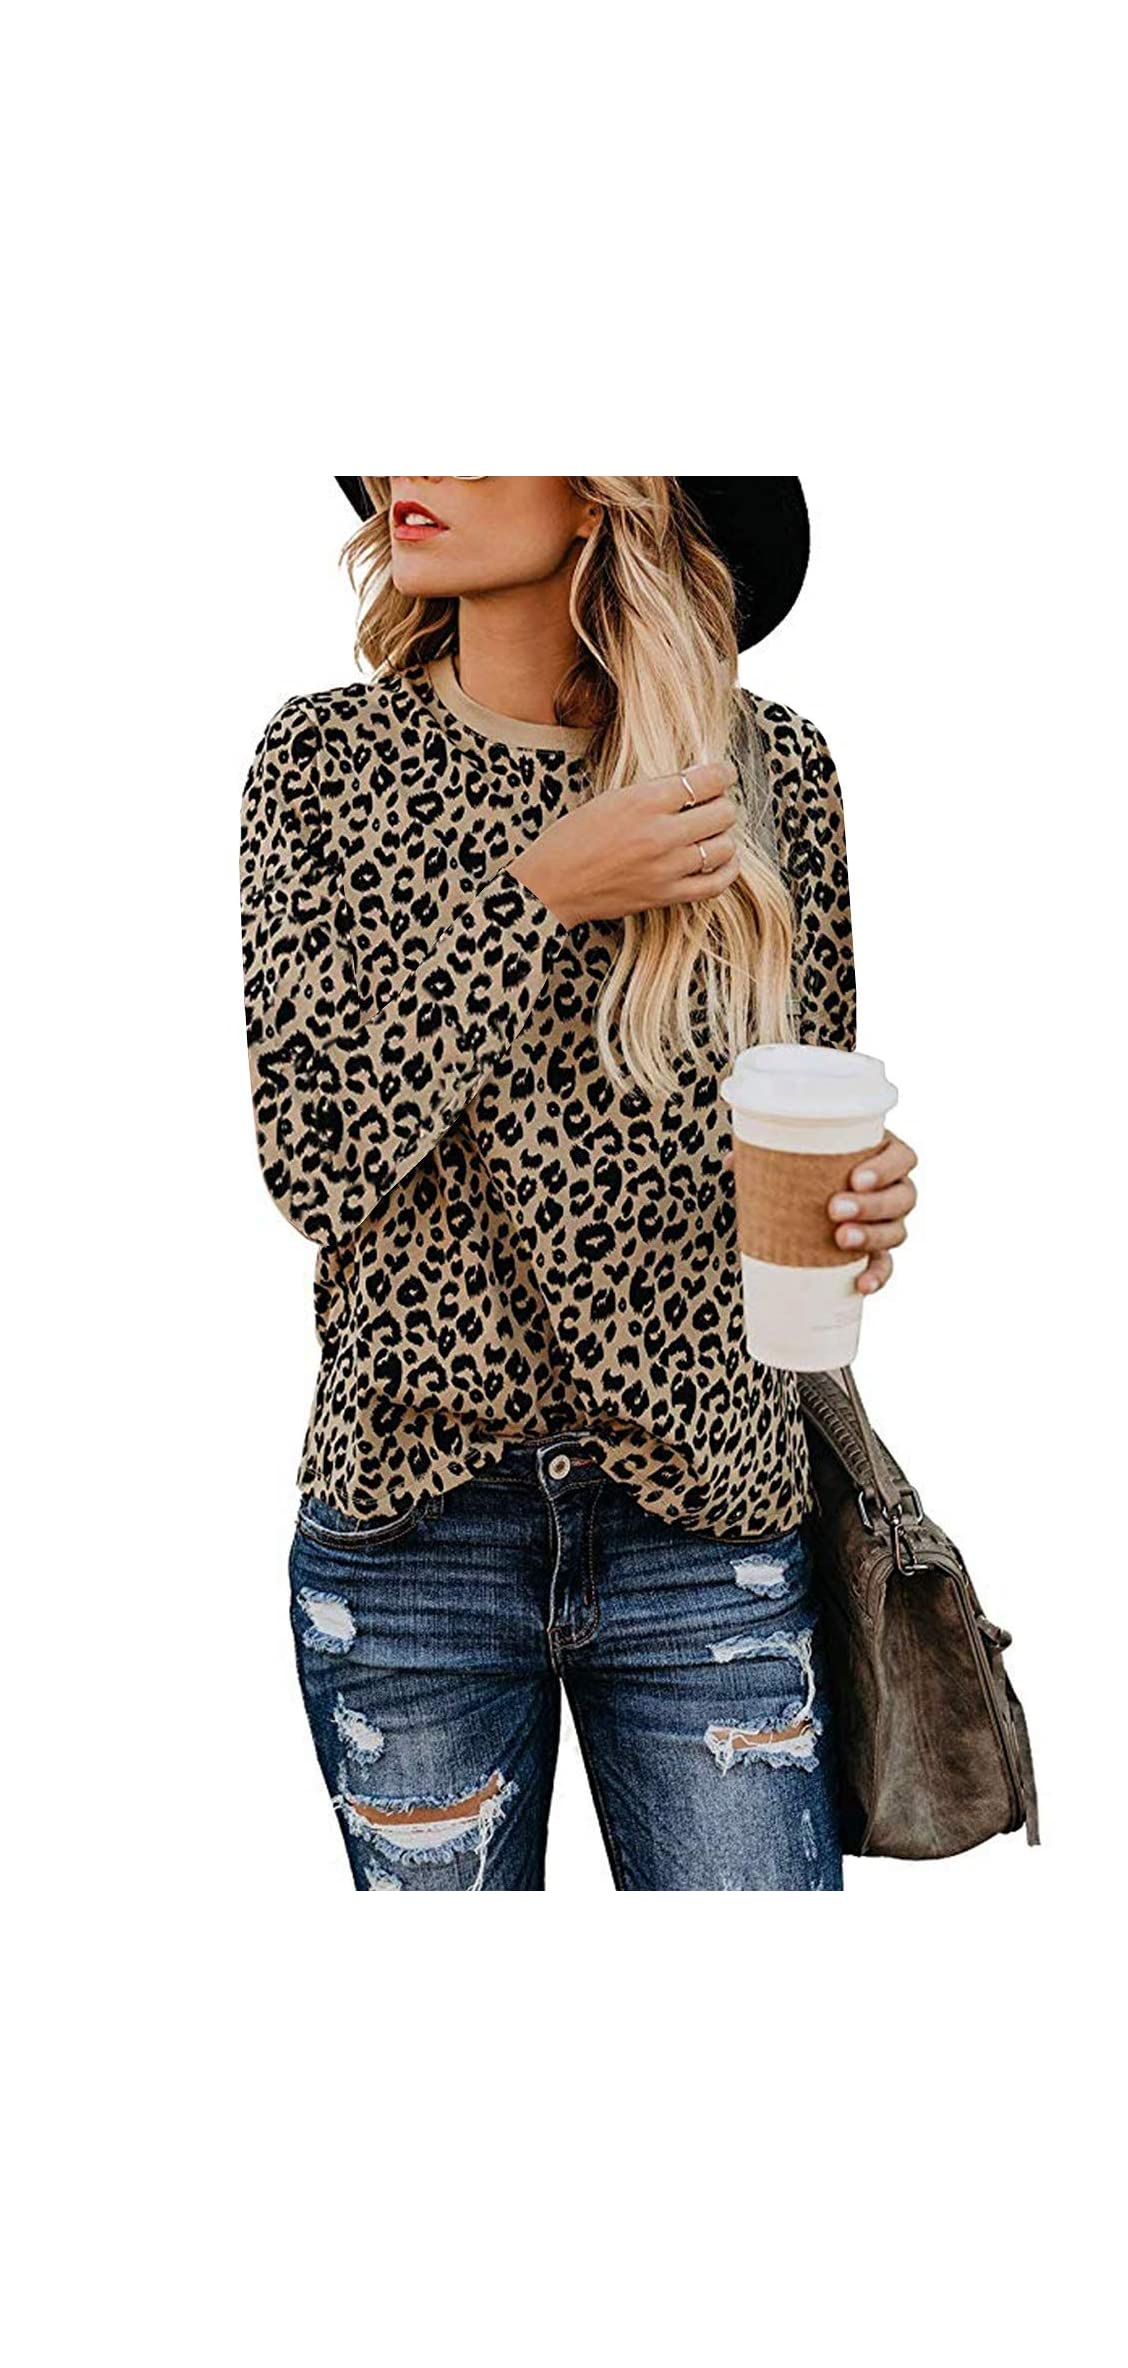 Leopard Print Tops For Women Cute Short Sleeve Round Neck Casual